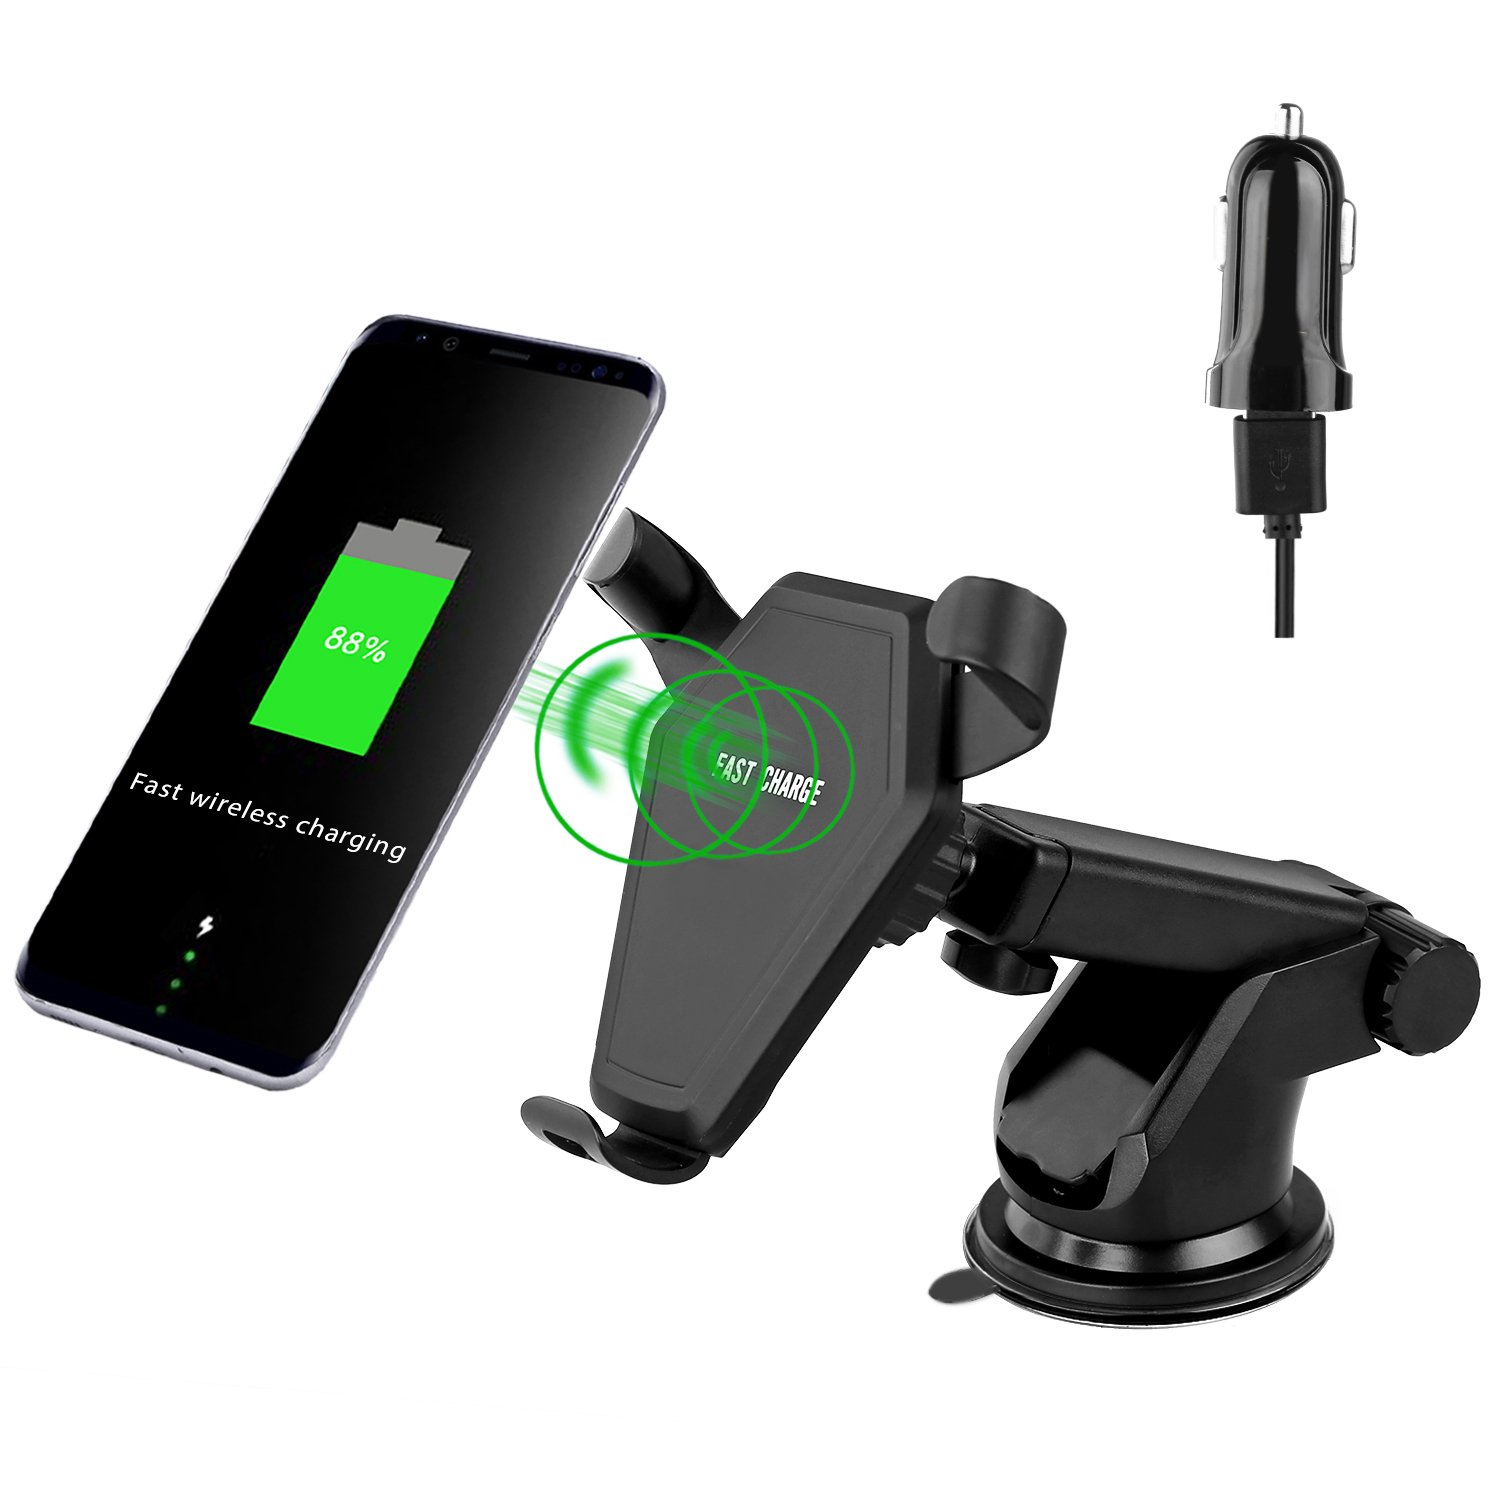 LWTER Qi Wireless Charger Car Mount Charging Pad for Samsung/iPhone/Smartphone